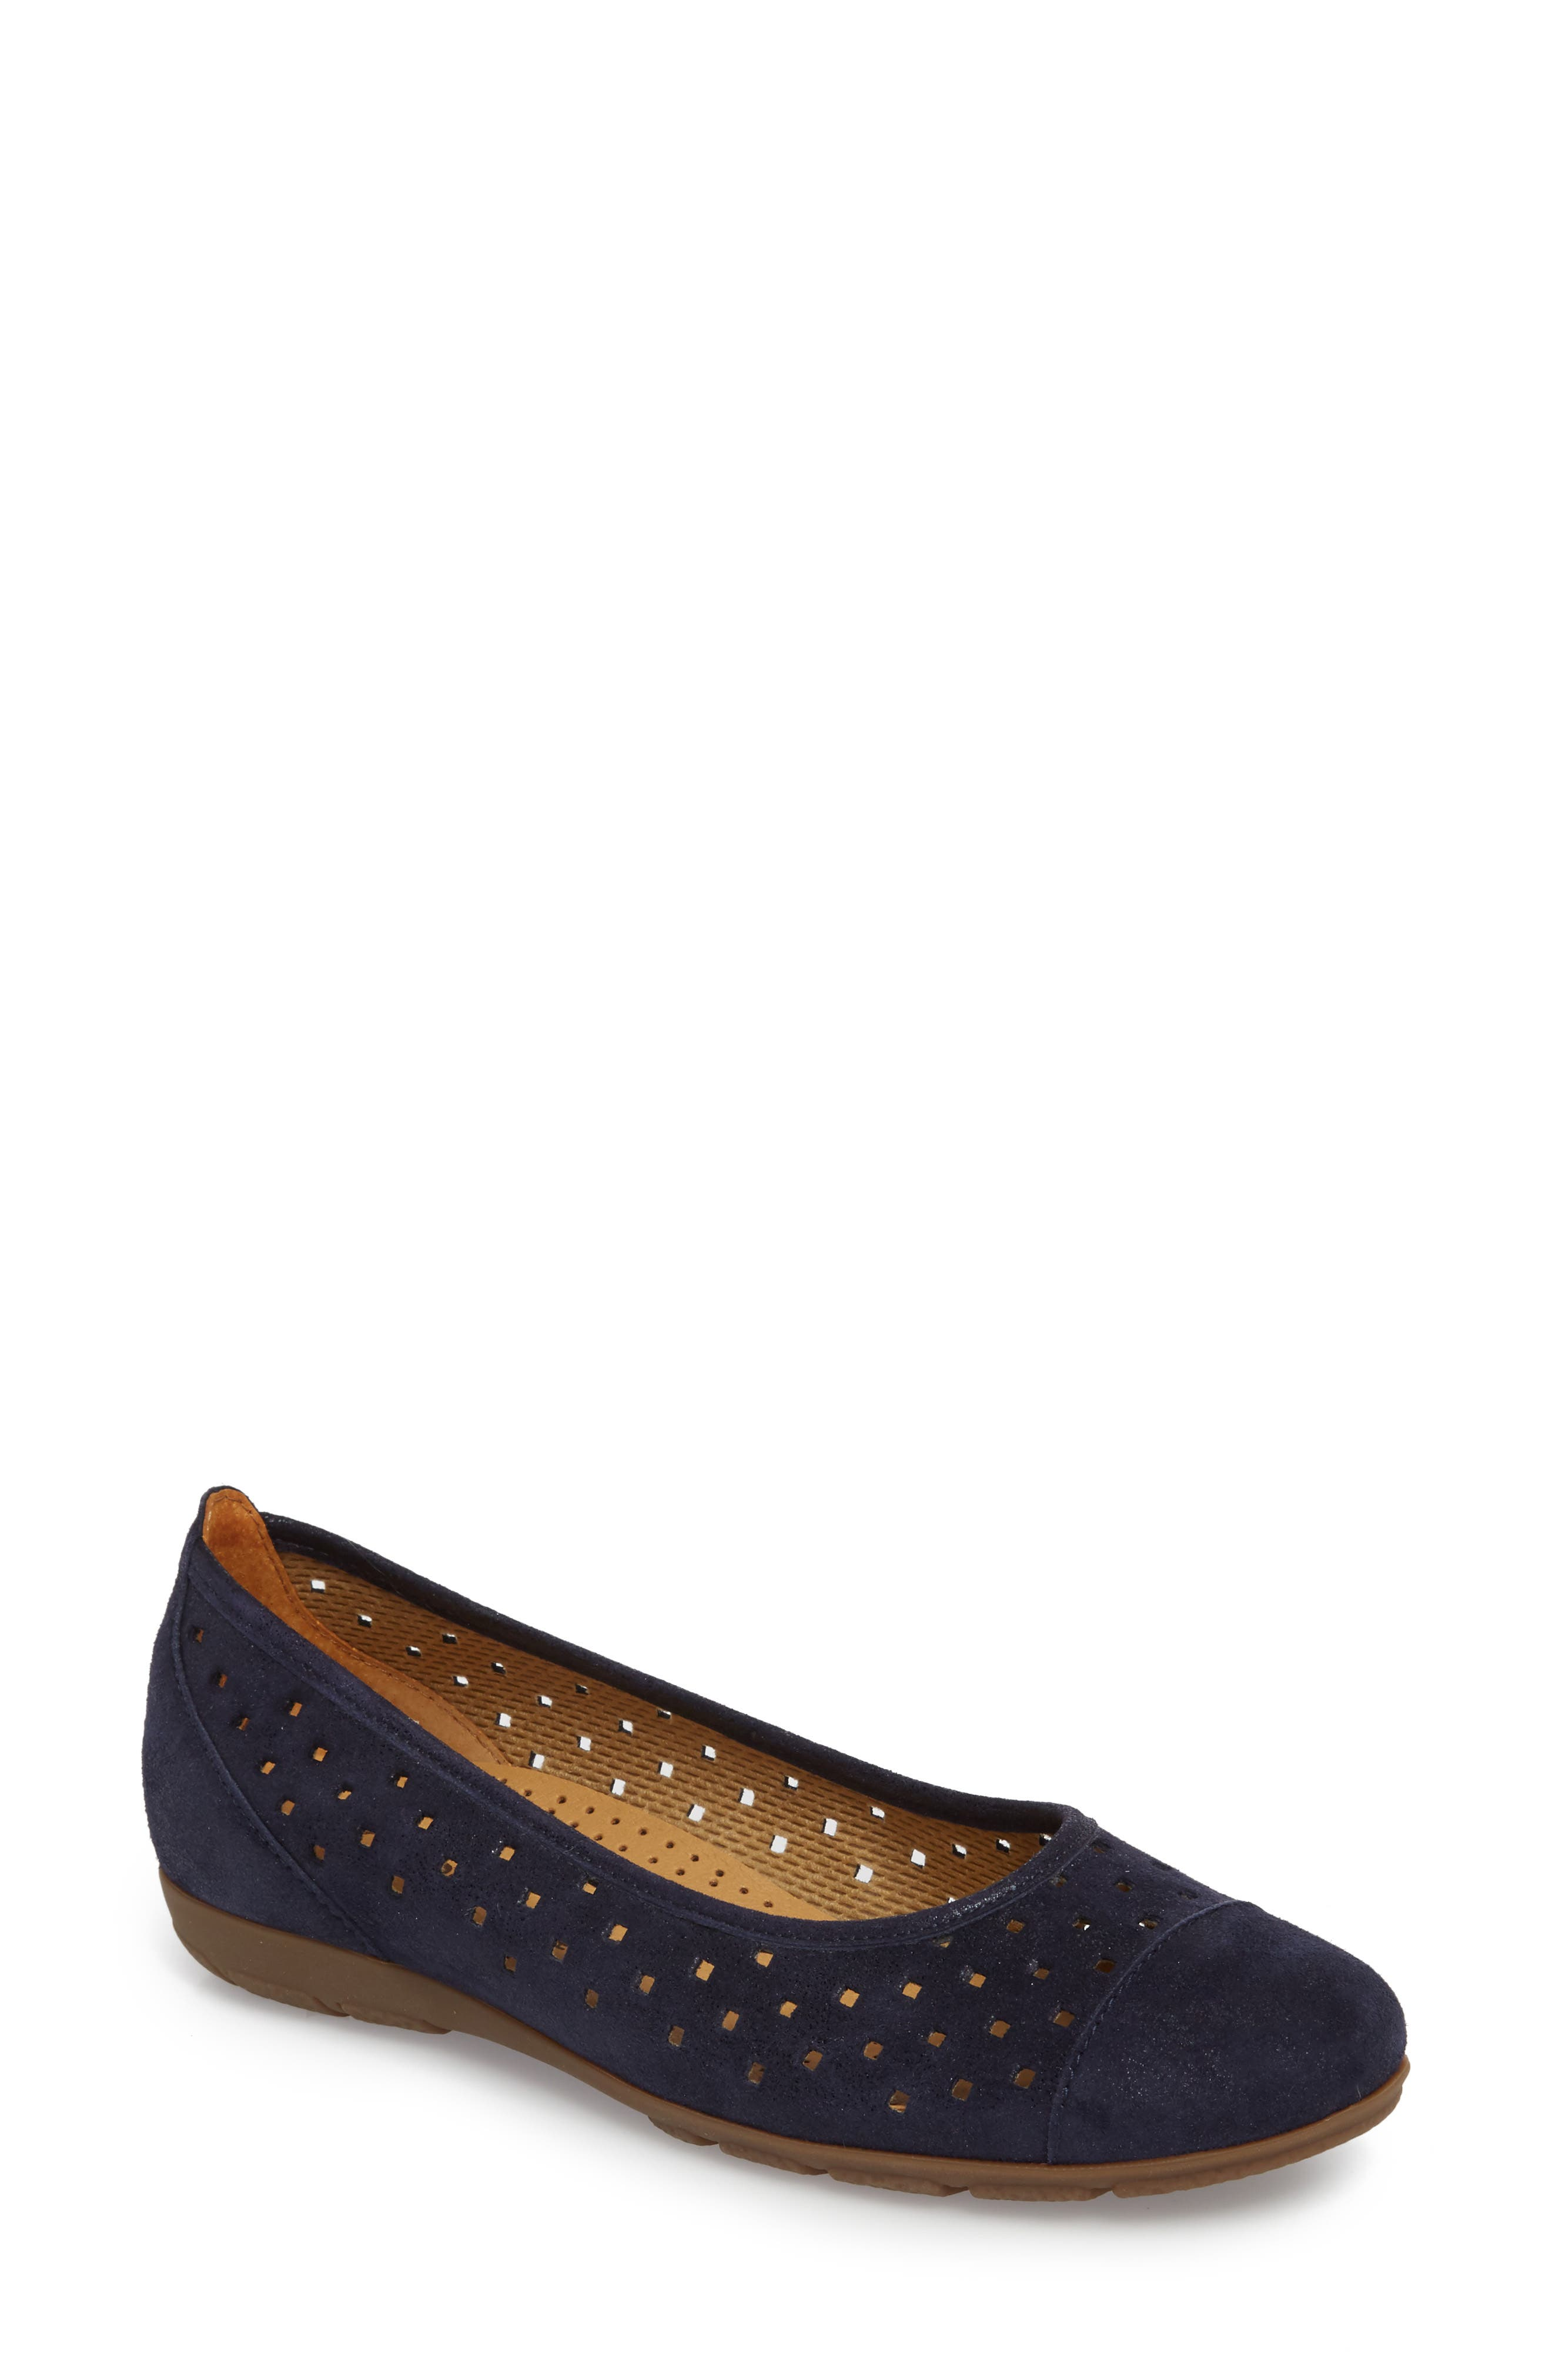 Perforated Ballet Flat,                             Main thumbnail 1, color,                             Blue Metallic Leather